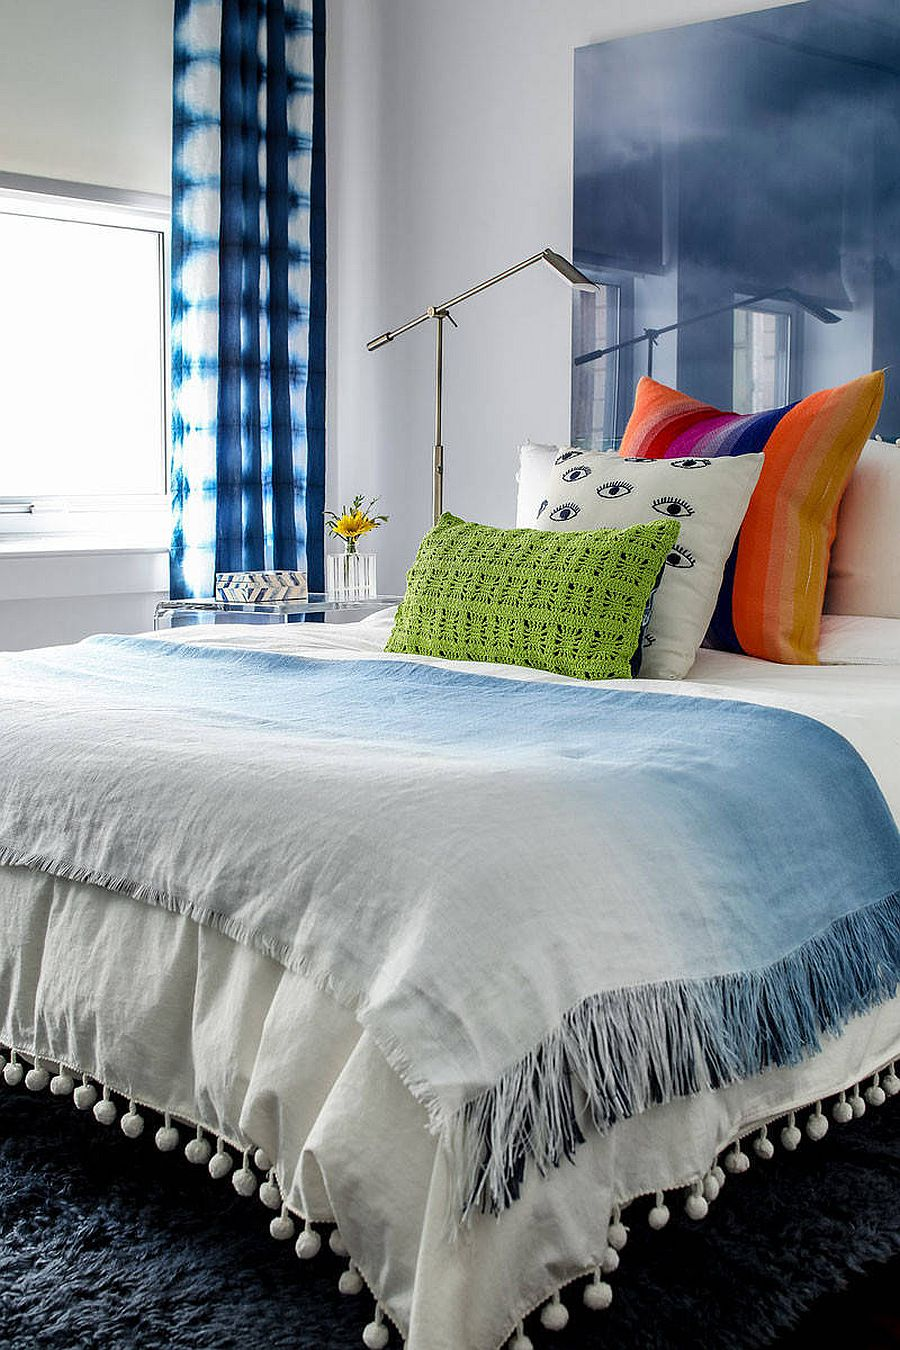 Custom-backdrop-in-lucite-adds-both-color-and-gloss-to-the-small-modern-bedroom-17778